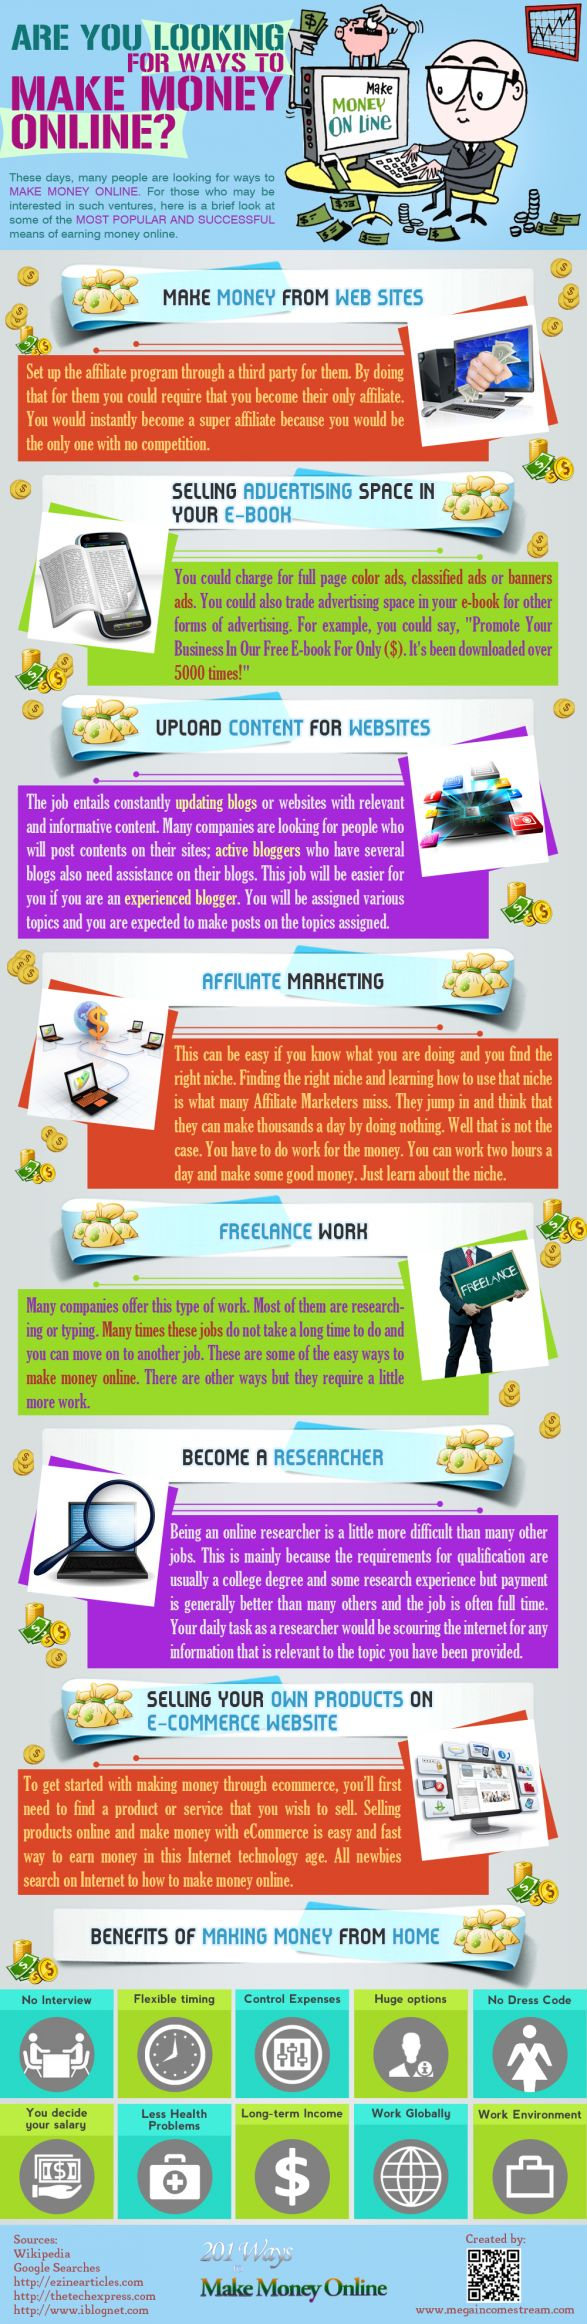 Find This Pin And More On Job Visualistan: Fast Easy Ways To Make Money  Online